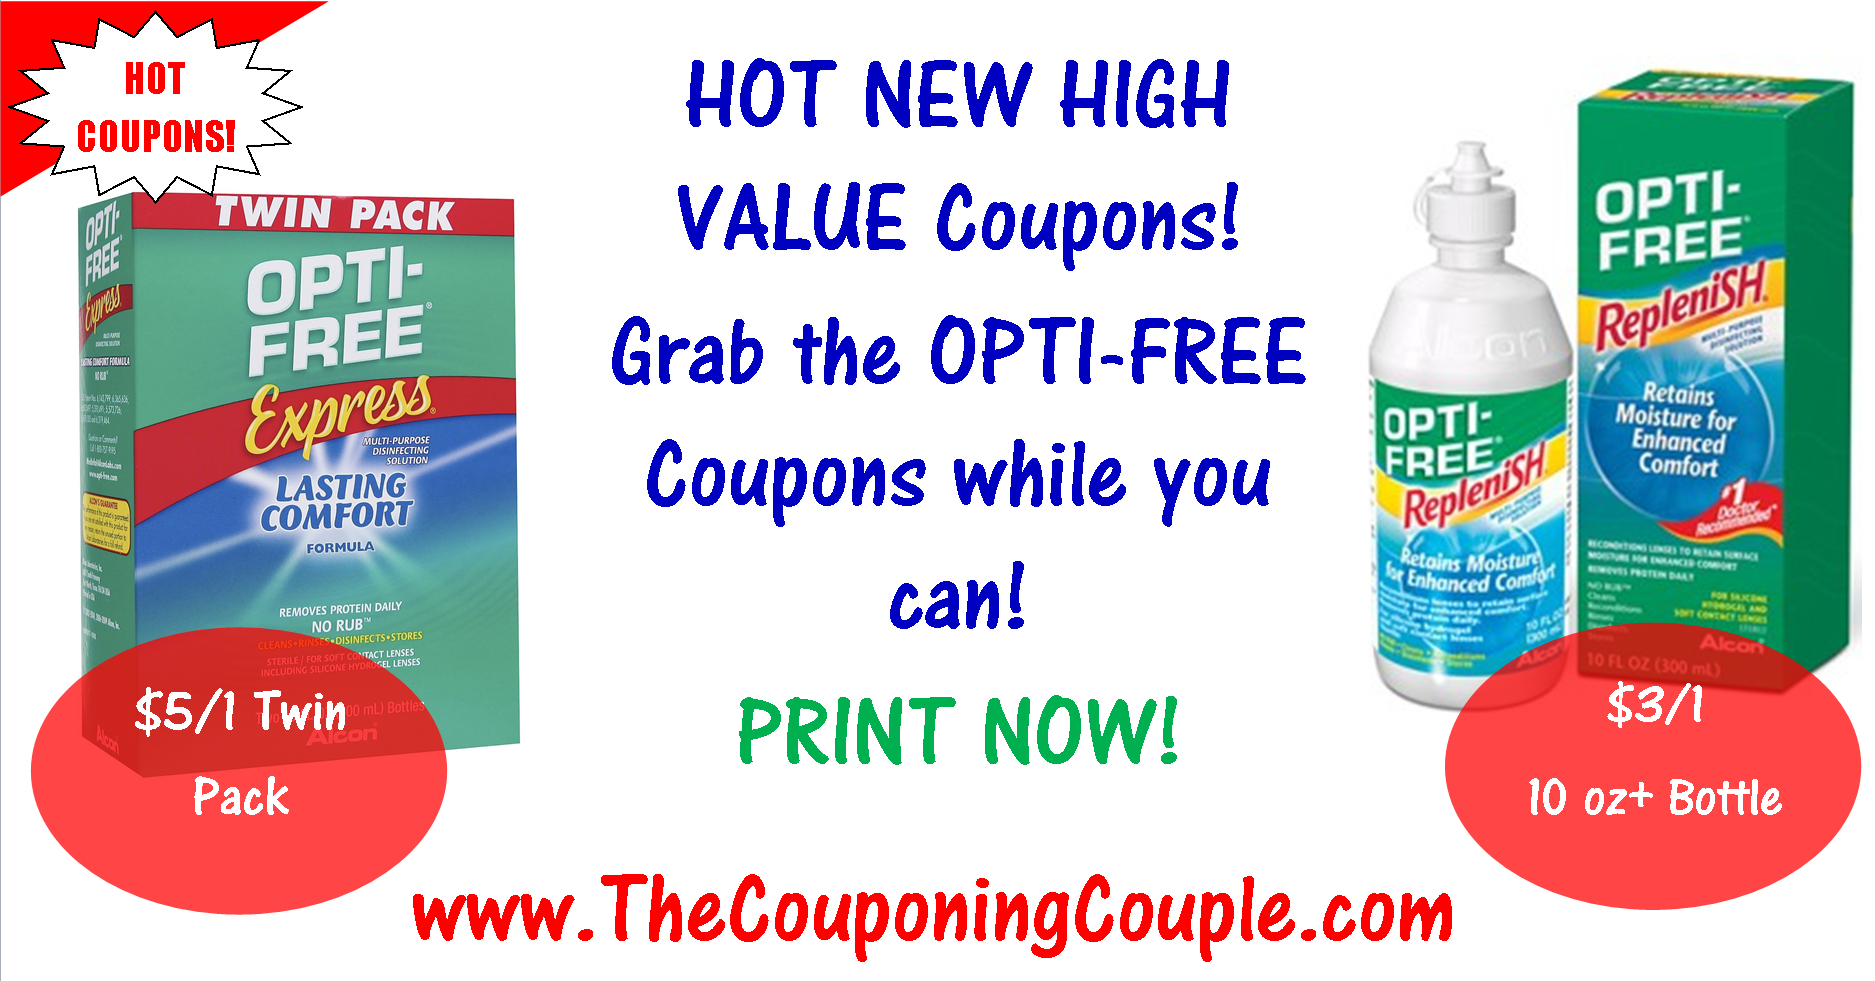 Opti-Free Printable Coupons + 94 More Personal Care Coupons! - Free High Value Printable Coupons